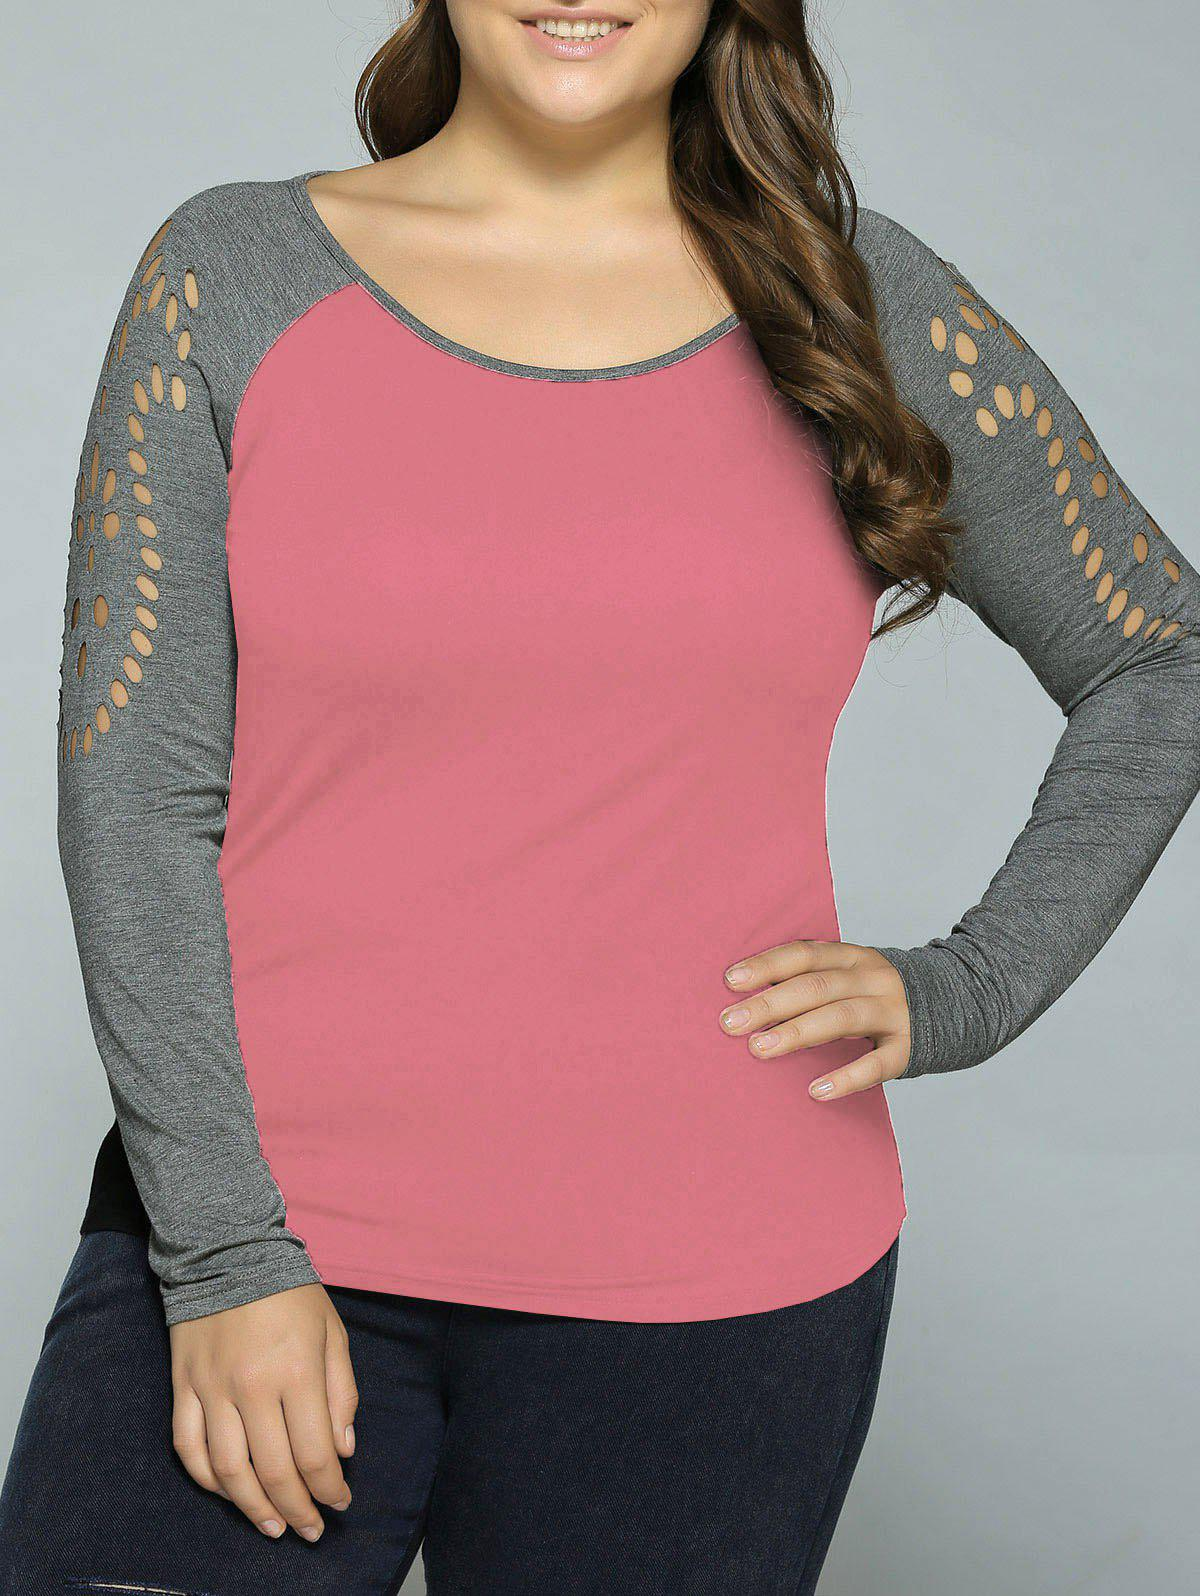 Plus Size Hollow Out Raglan Sleeve T-ShirtWOMEN<br><br>Size: 5XL; Color: PINK; Material: Rayon,Spandex; Shirt Length: Regular; Sleeve Length: Full; Collar: Scoop Neck; Style: Casual; Season: Fall,Spring,Summer; Pattern Type: Solid; Weight: 0.370kg; Package Contents: 1 x T-Shirt;